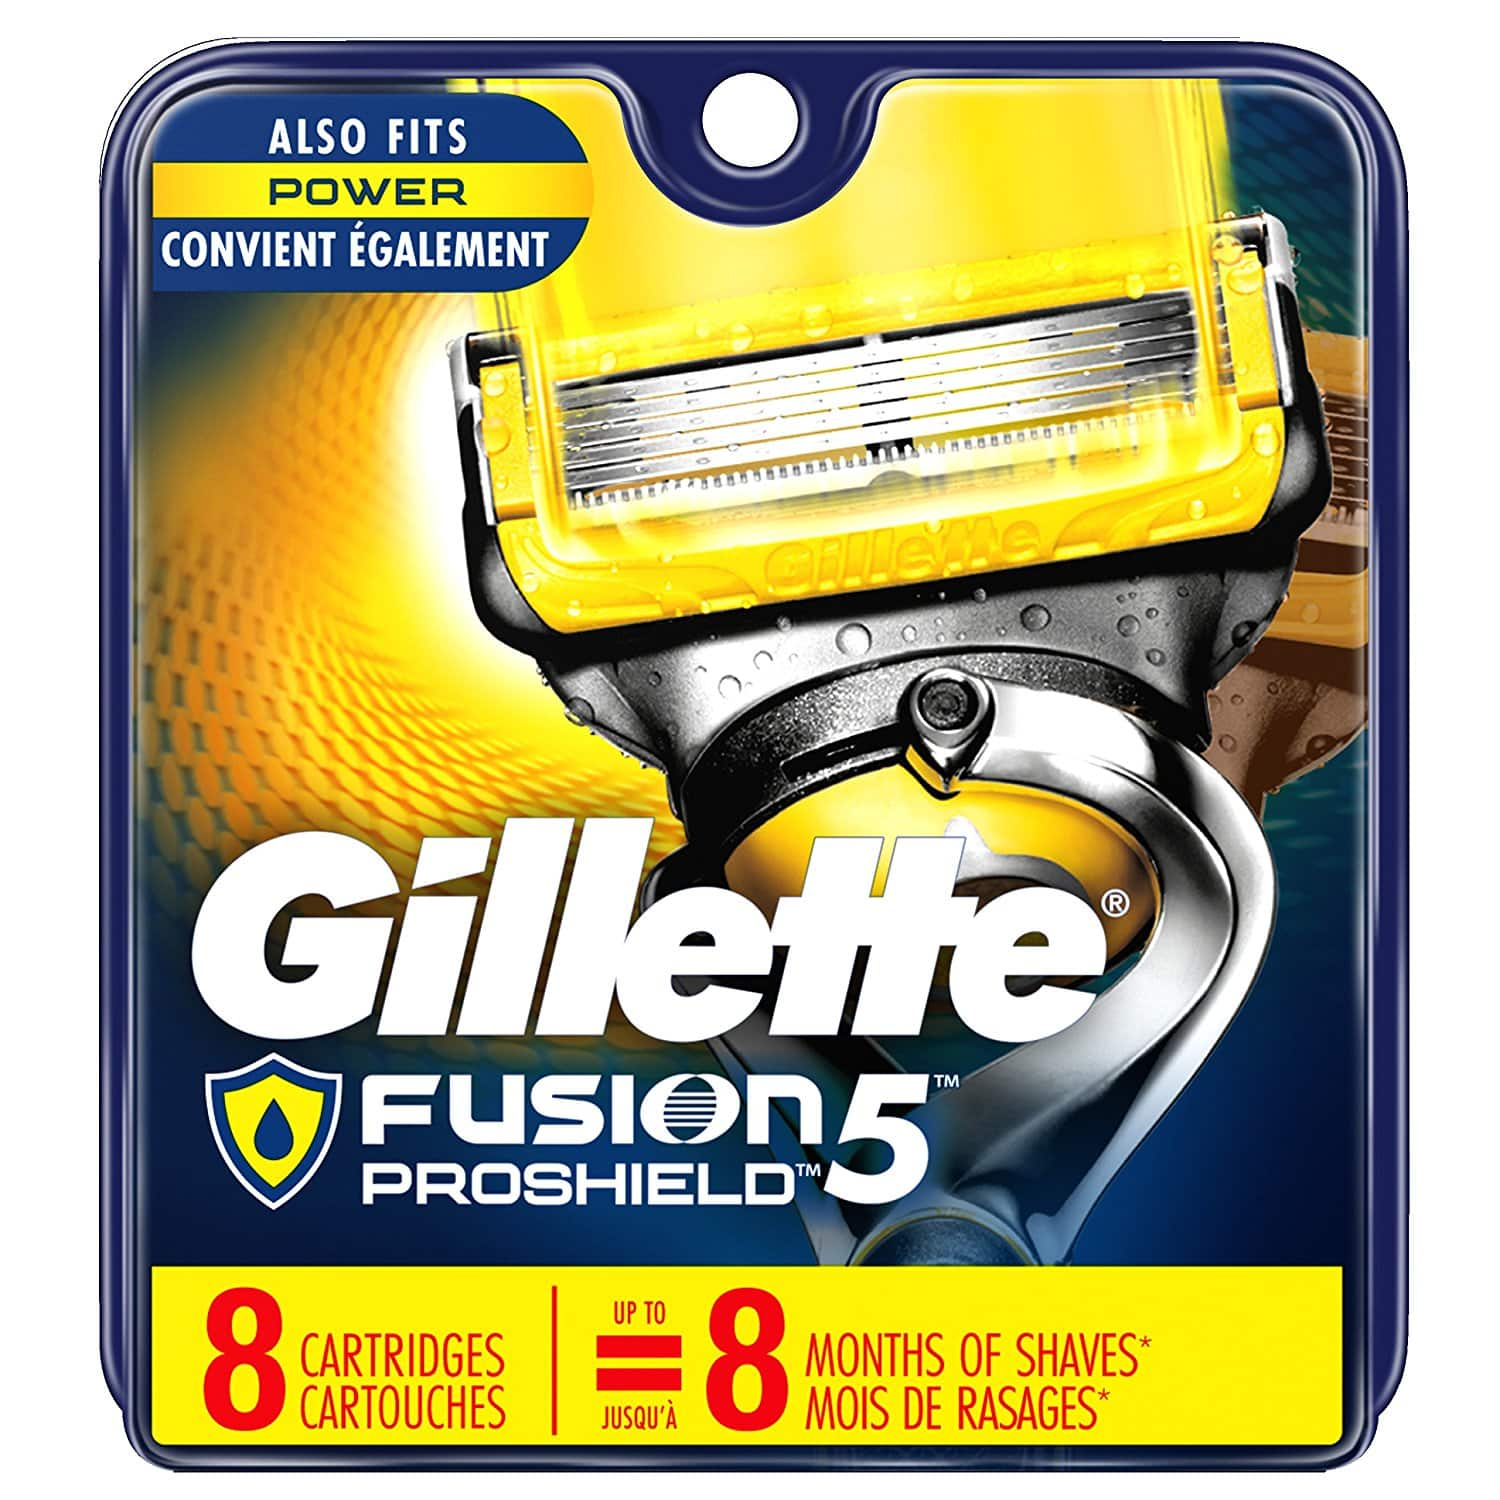 Gillette Fusion5 ProShield Men's Razor Blades, 8 Blade Refills for $23.89 +FS